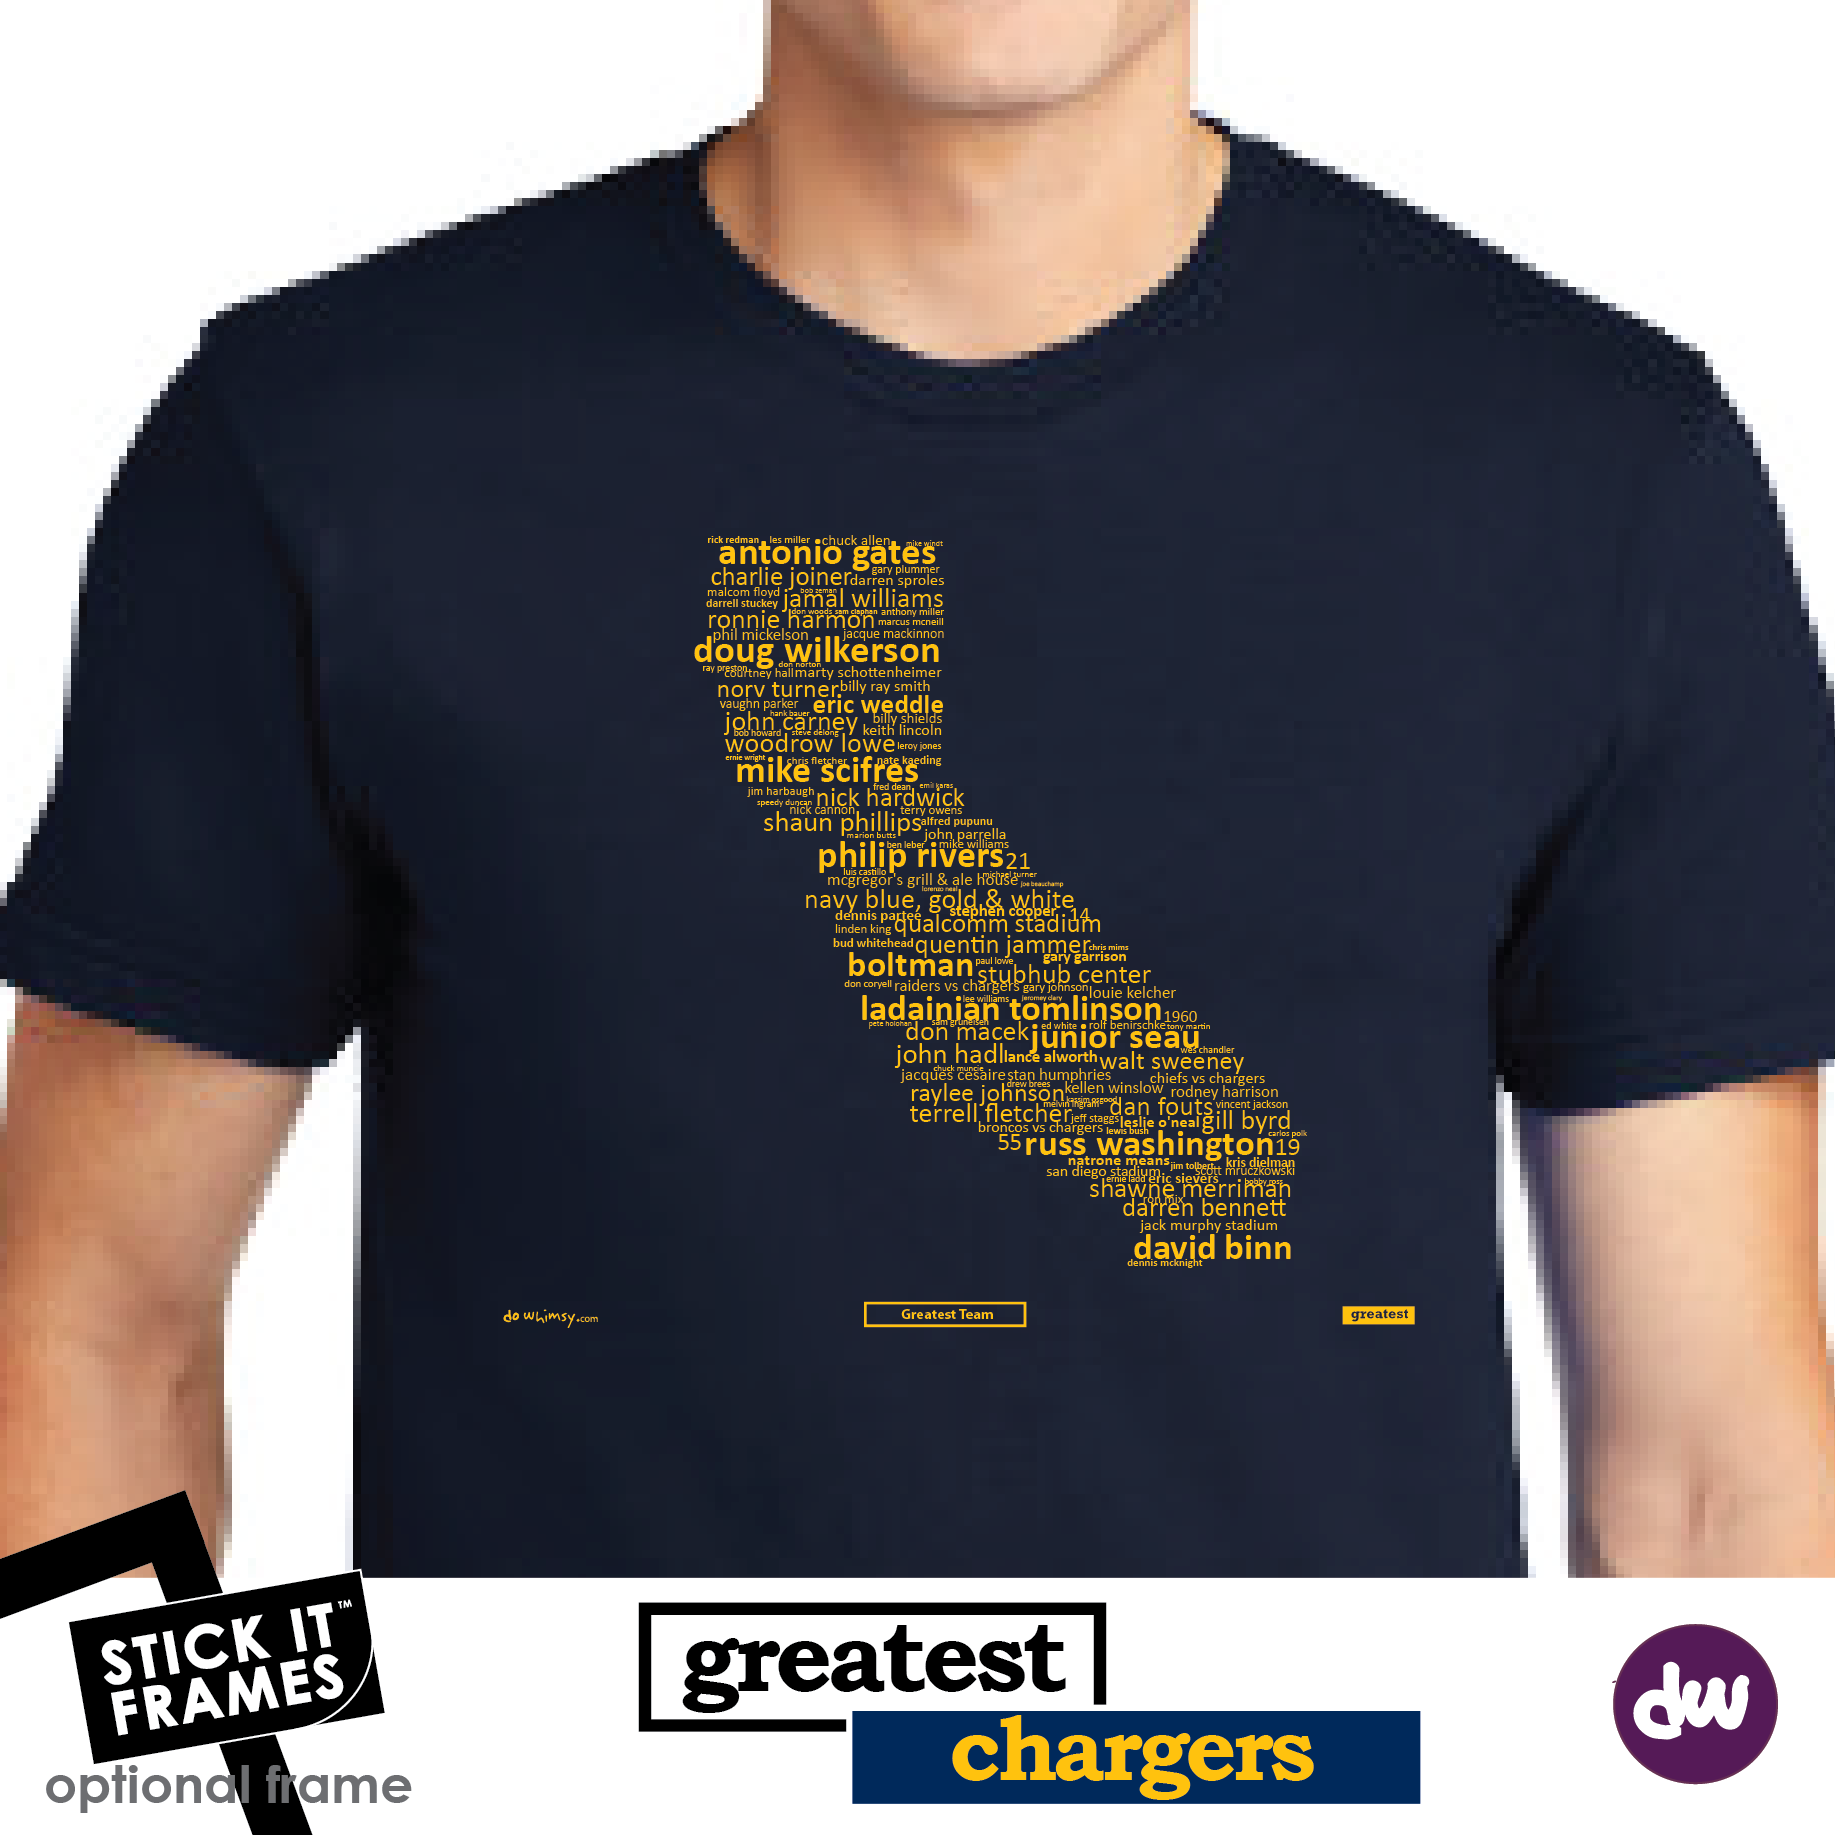 Greatest California (Chargers) - All Products (Shirt, Art, Frames (R))